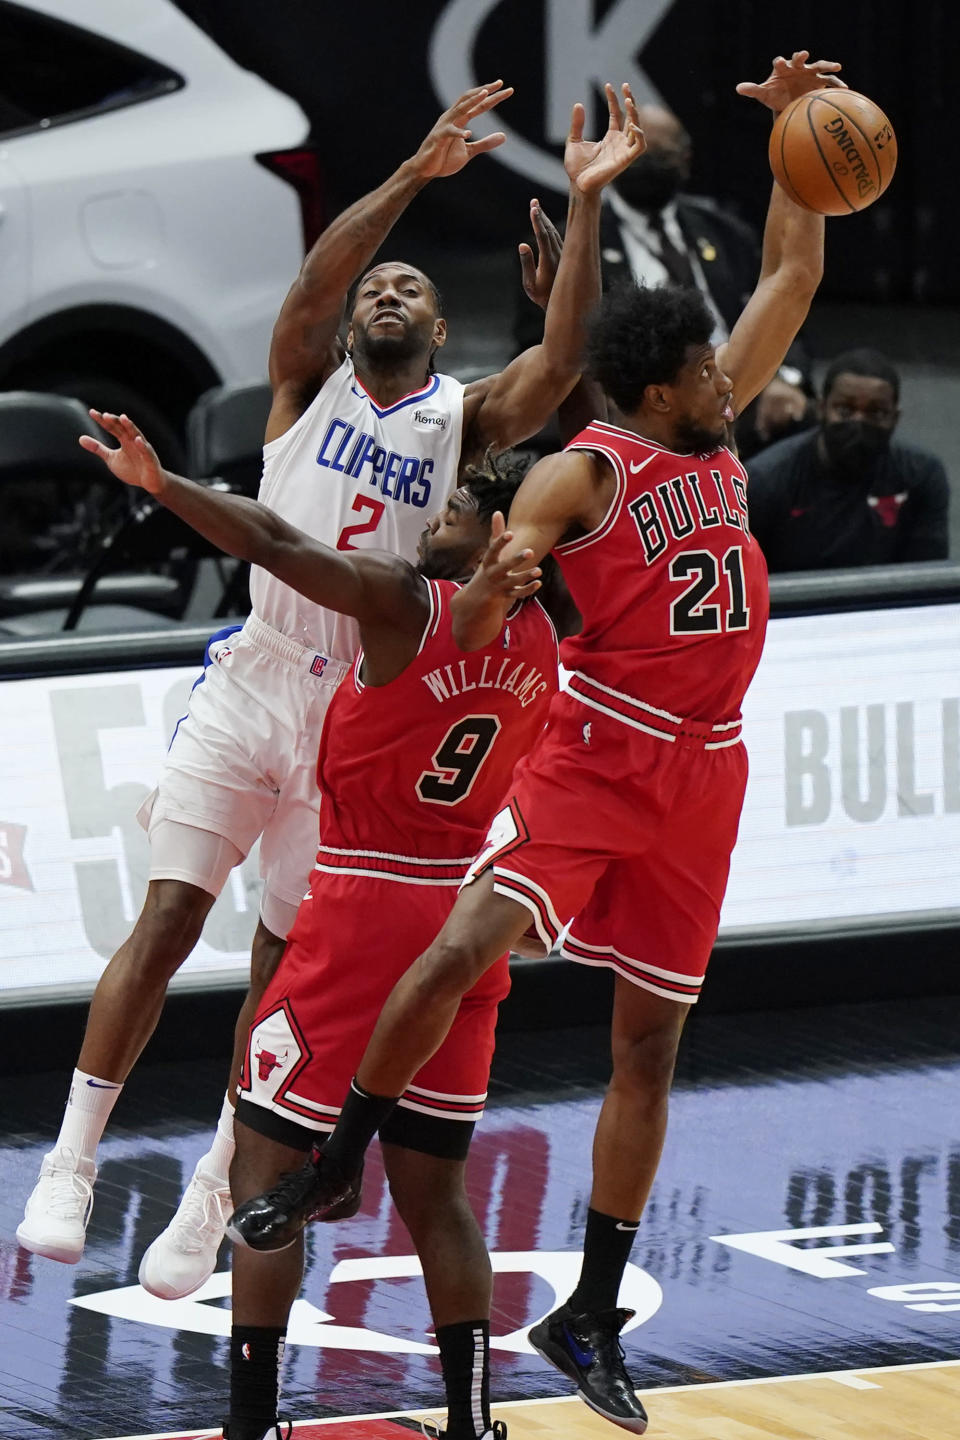 Chicago Bulls forward Thaddeus Young, right, intercepts a pass next to teammate Patrick Williams, center, and Los Angeles Clippers forward Kawhi Leonard during the first half of an NBA basketball game in Chicago, Friday, Feb. 12, 2021. (AP Photo/Nam Y. Huh)